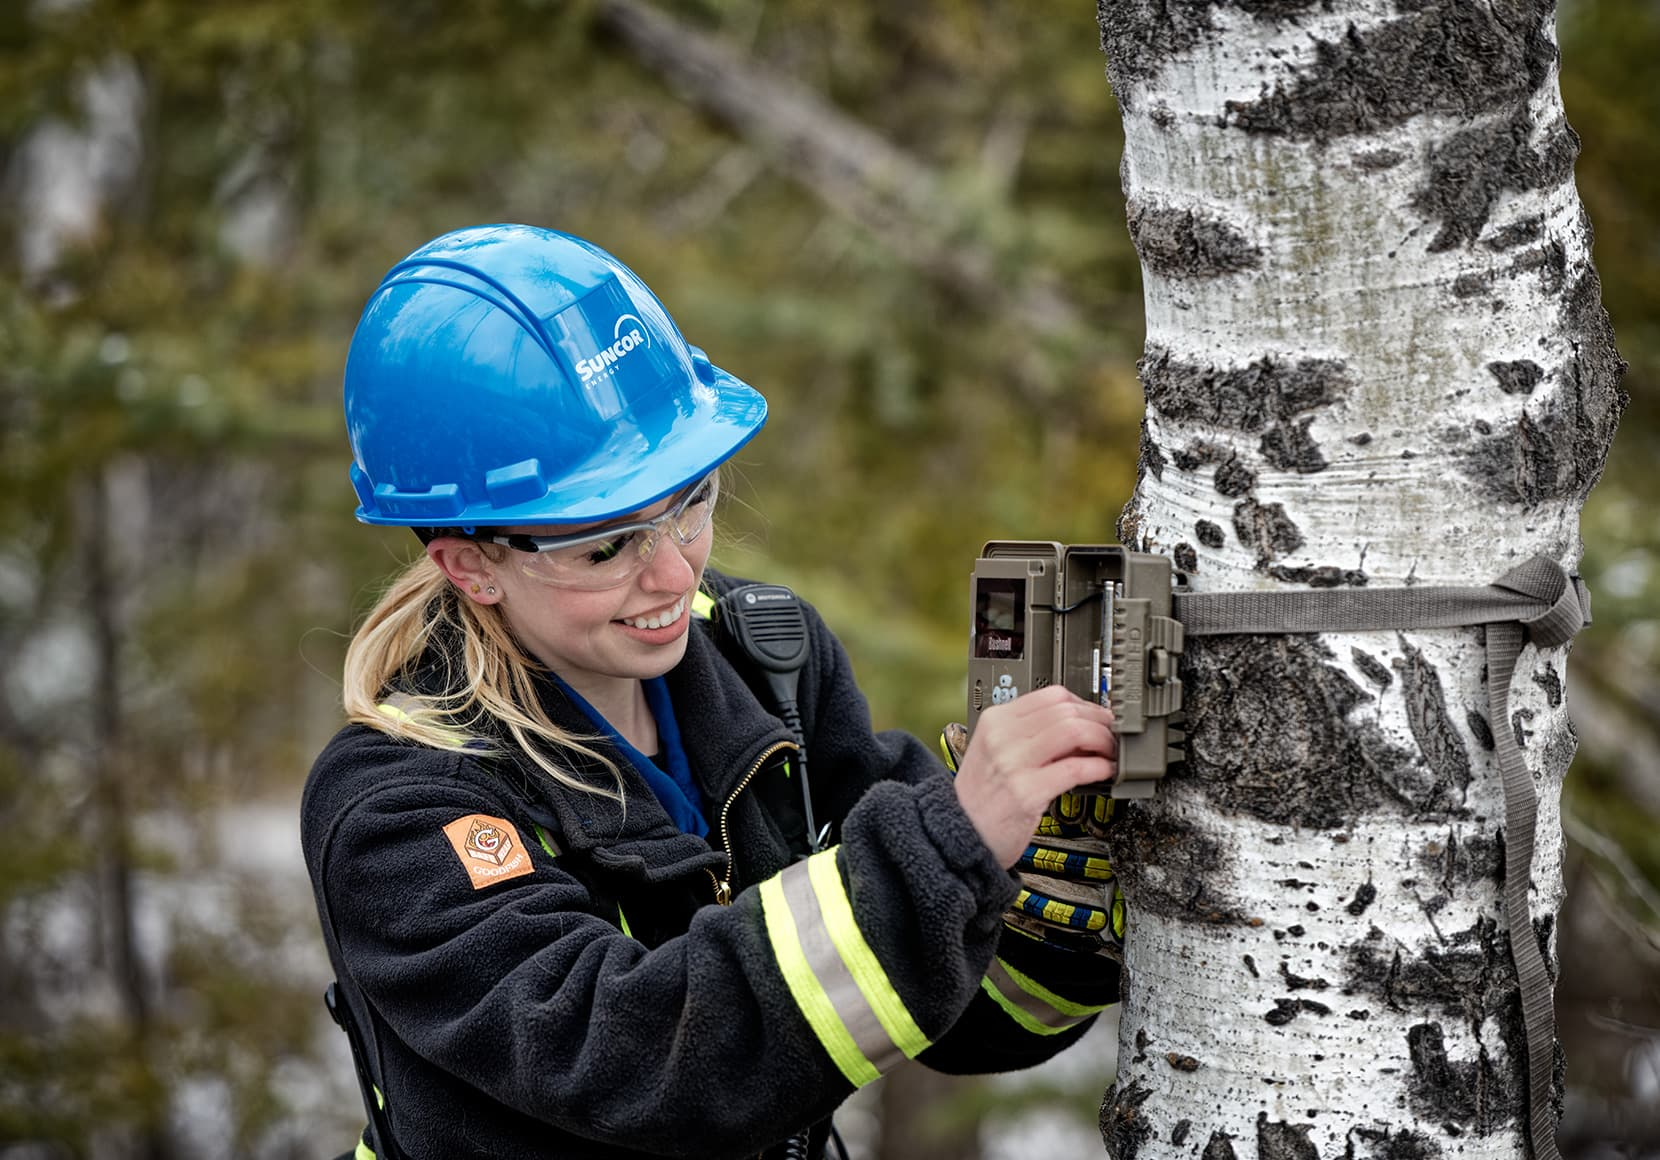 A female worker, Jillian Janes, installing a wildlife monitoring camera on a tree at the MacKay River site. She is wearing a blue hard hat, eye protection and coveralls.